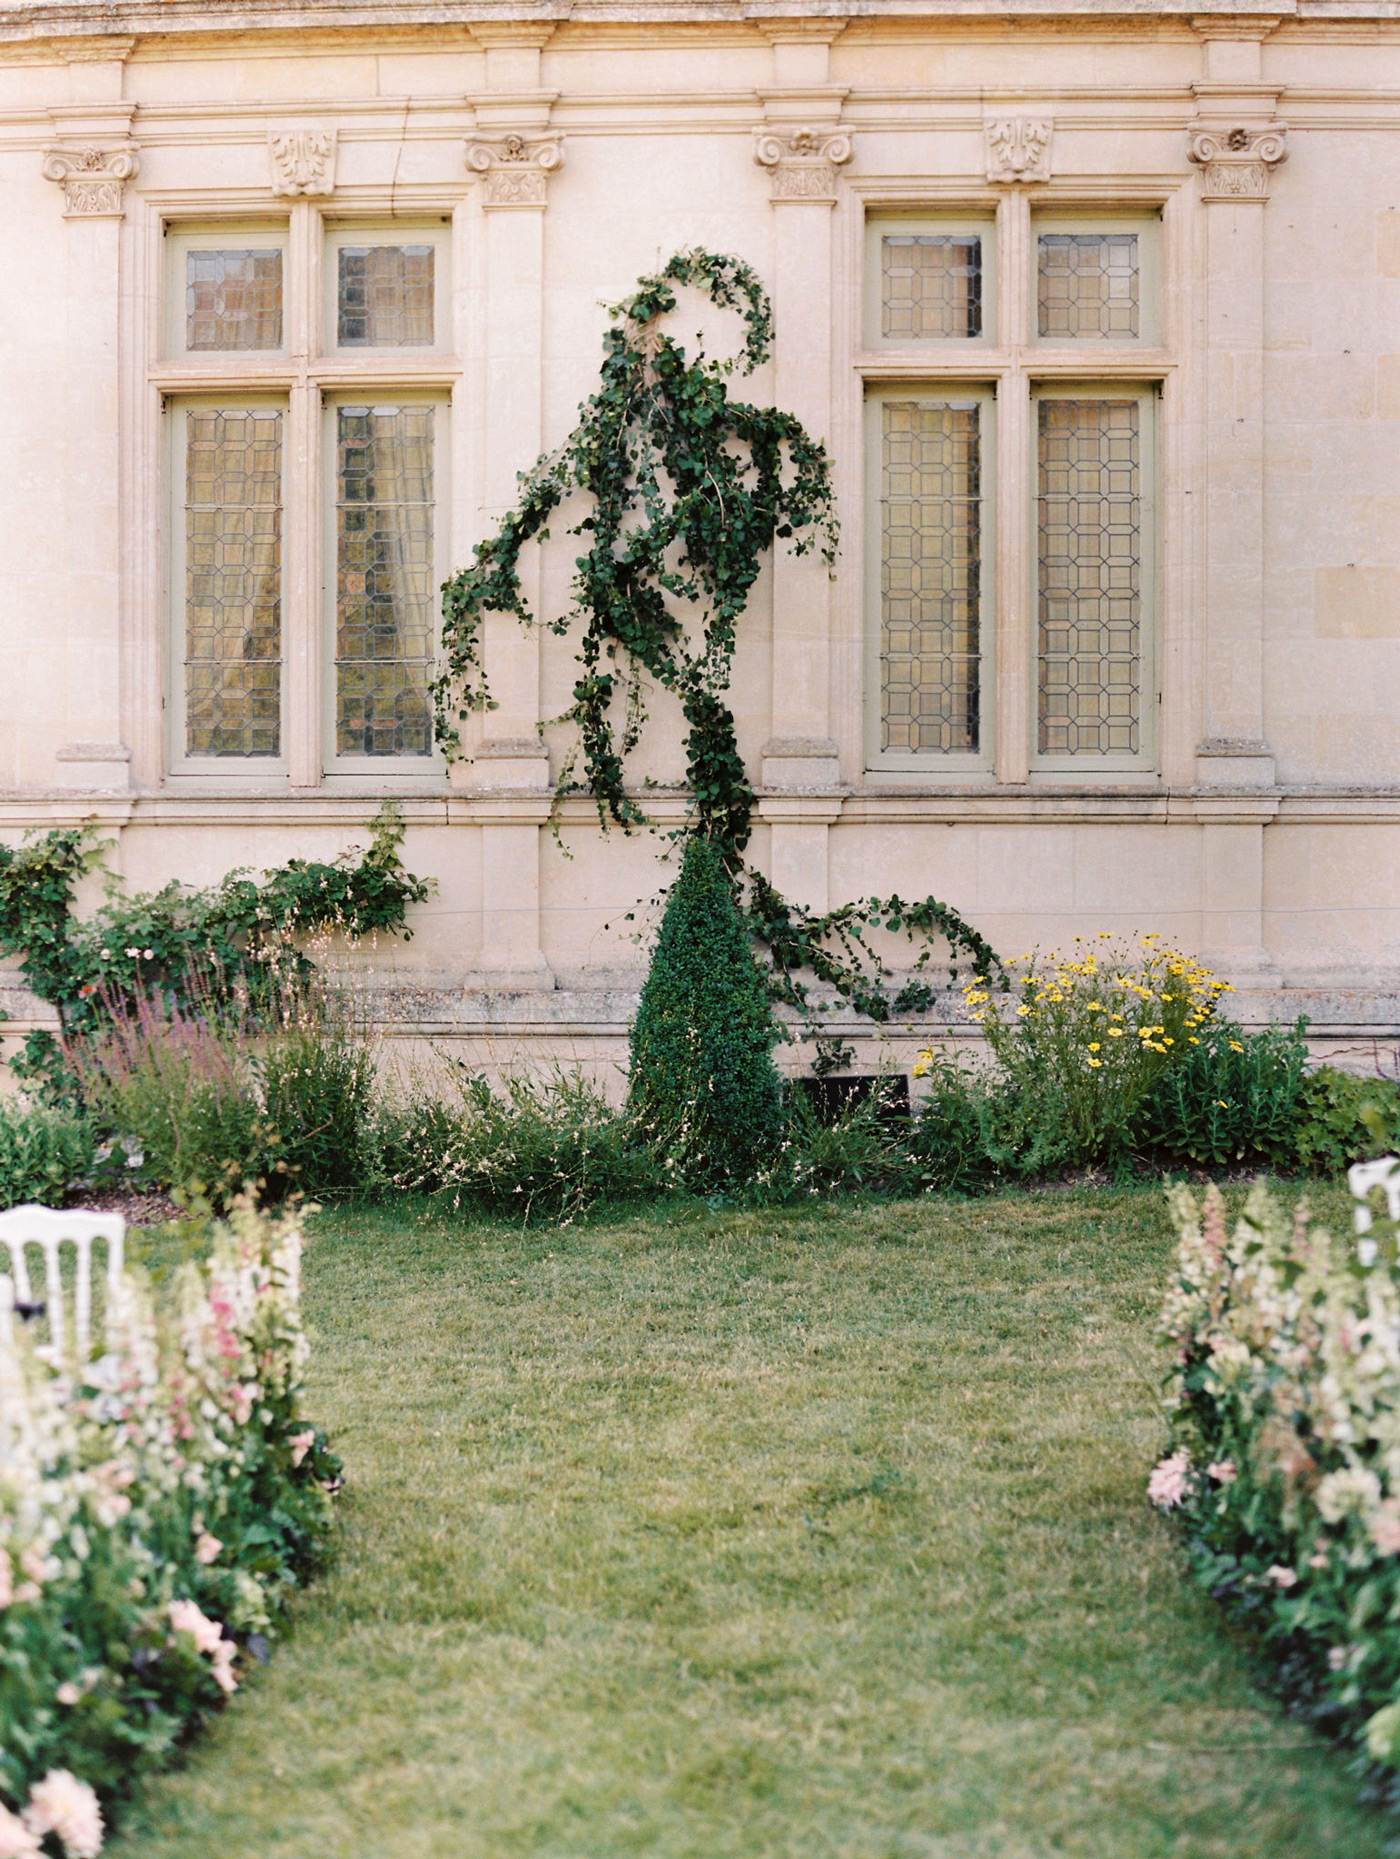 outdoor wedding space green vine growing up building